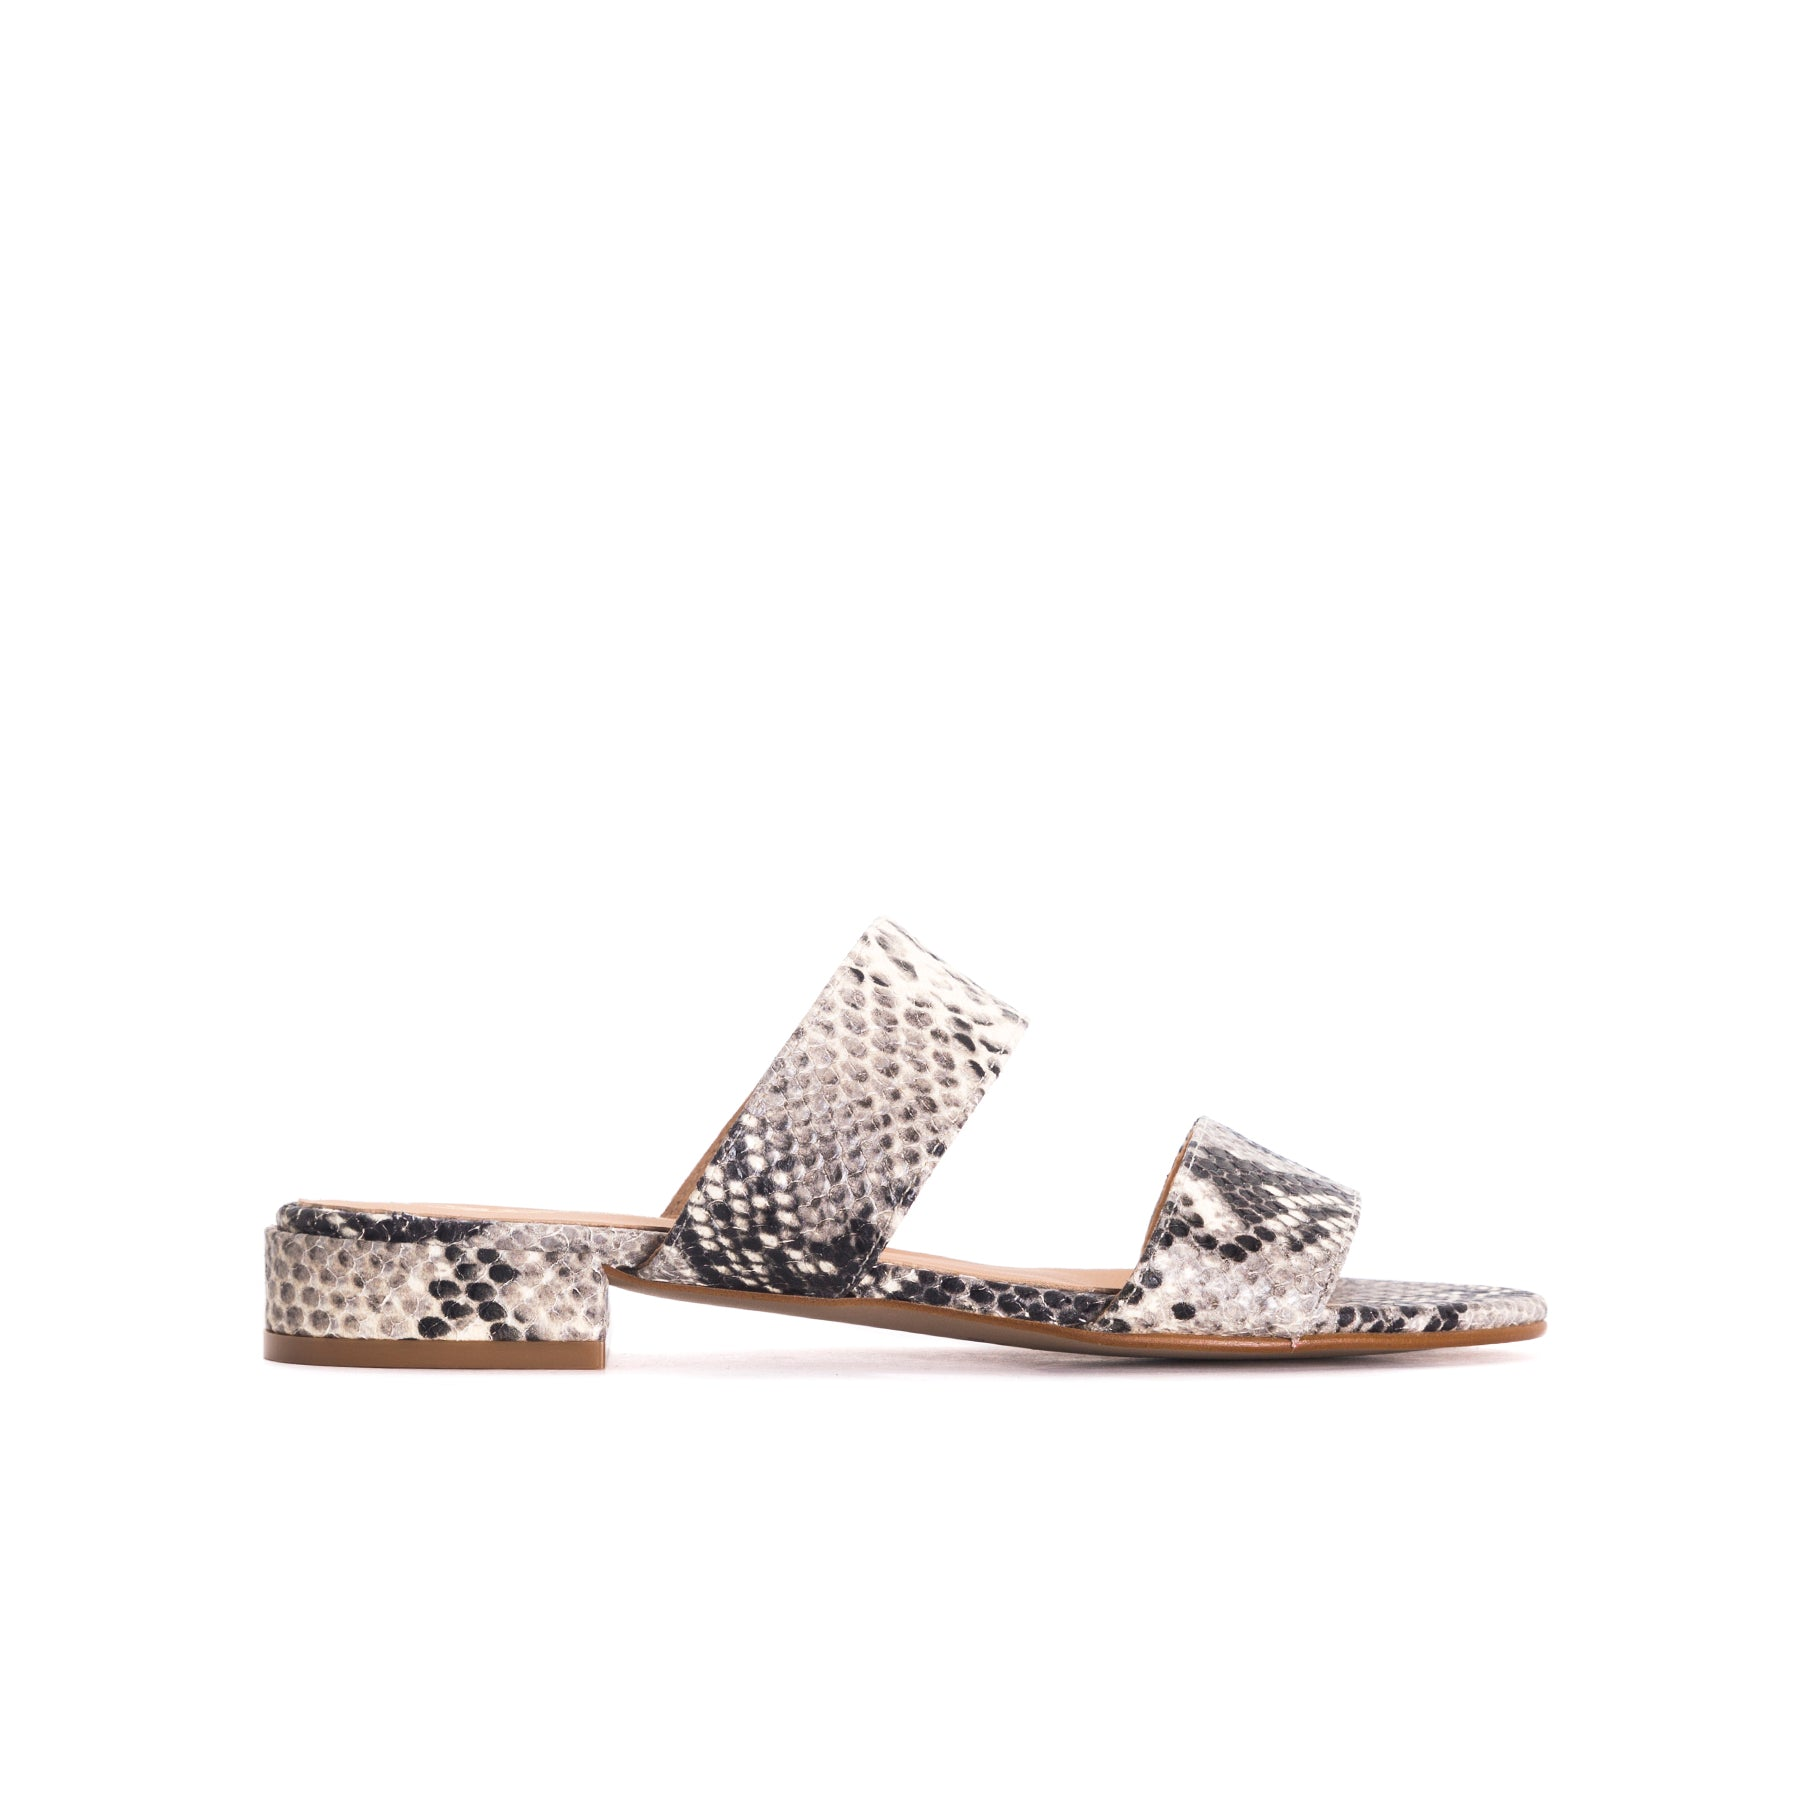 Gigi Black&White Snake Leather Sandals